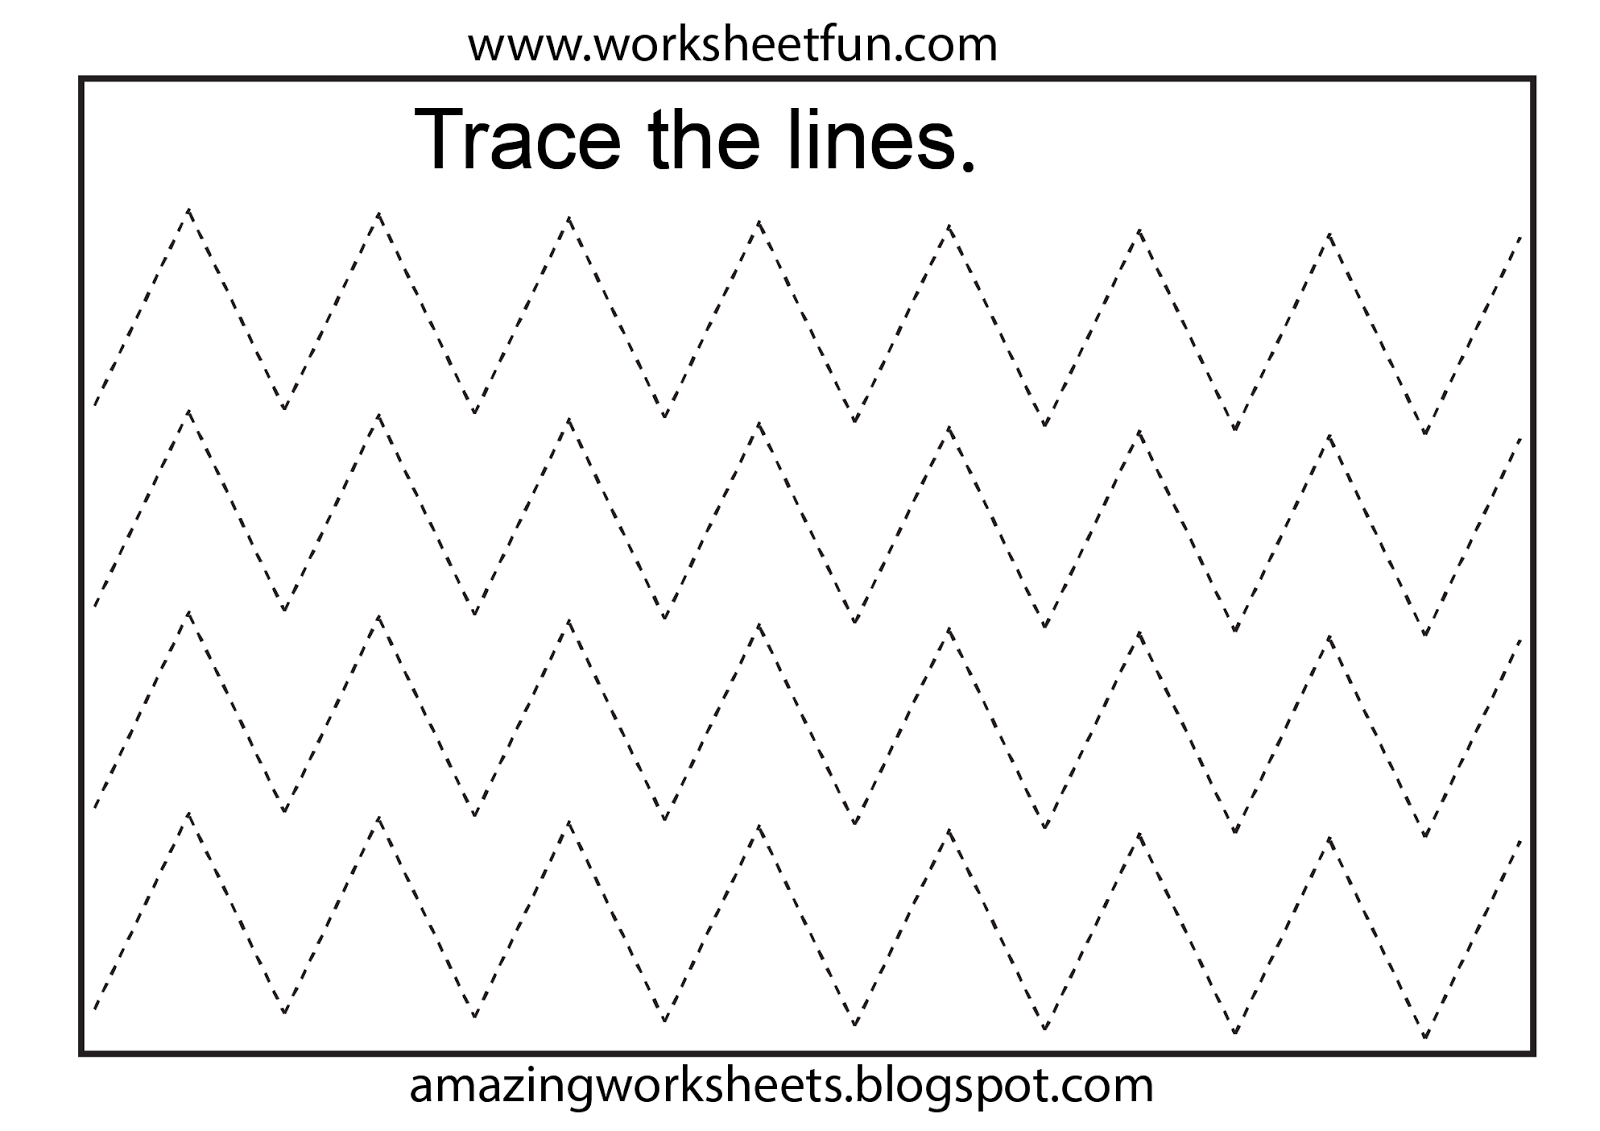 Free Printable Tracing Worksheets Preschool | Preschool Worksheets - Free Printable Preschool Worksheets Tracing Lines